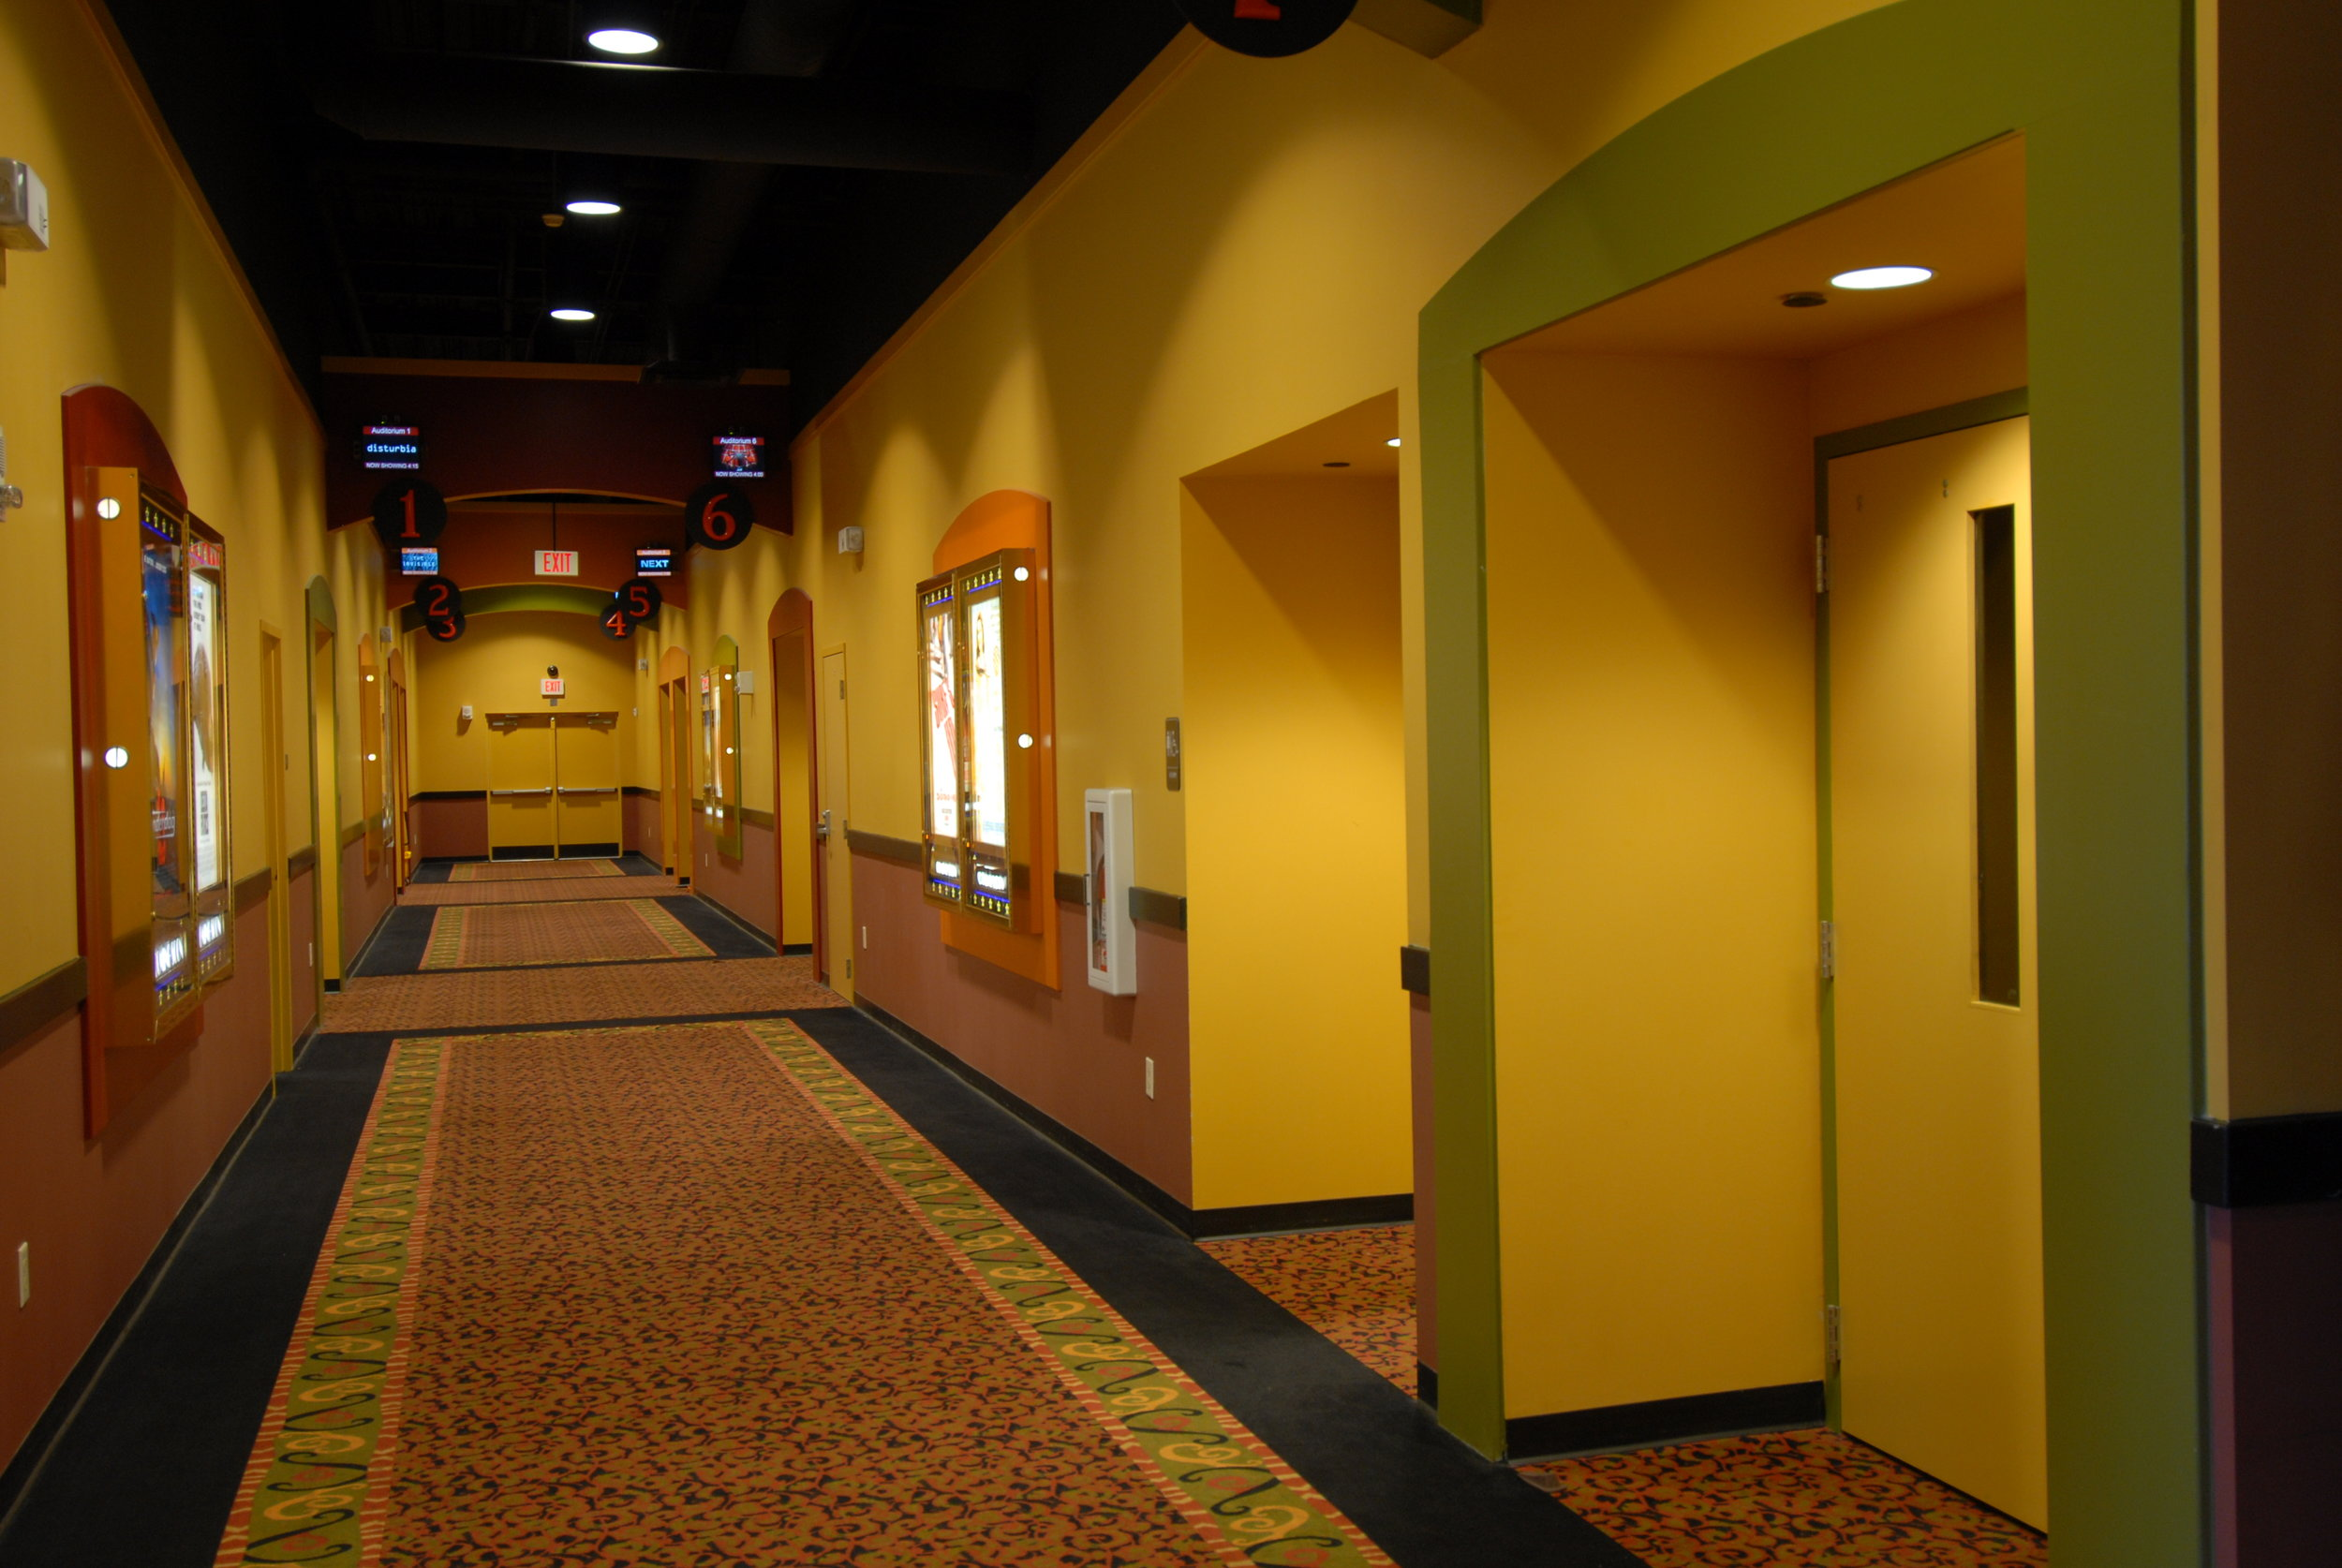 ADW-Office+Mixed-Use-Retail-Restaurant-Entertainment-Ayrsely-Town-Center-Charlotte-NC-Theatre-hallway.jpg